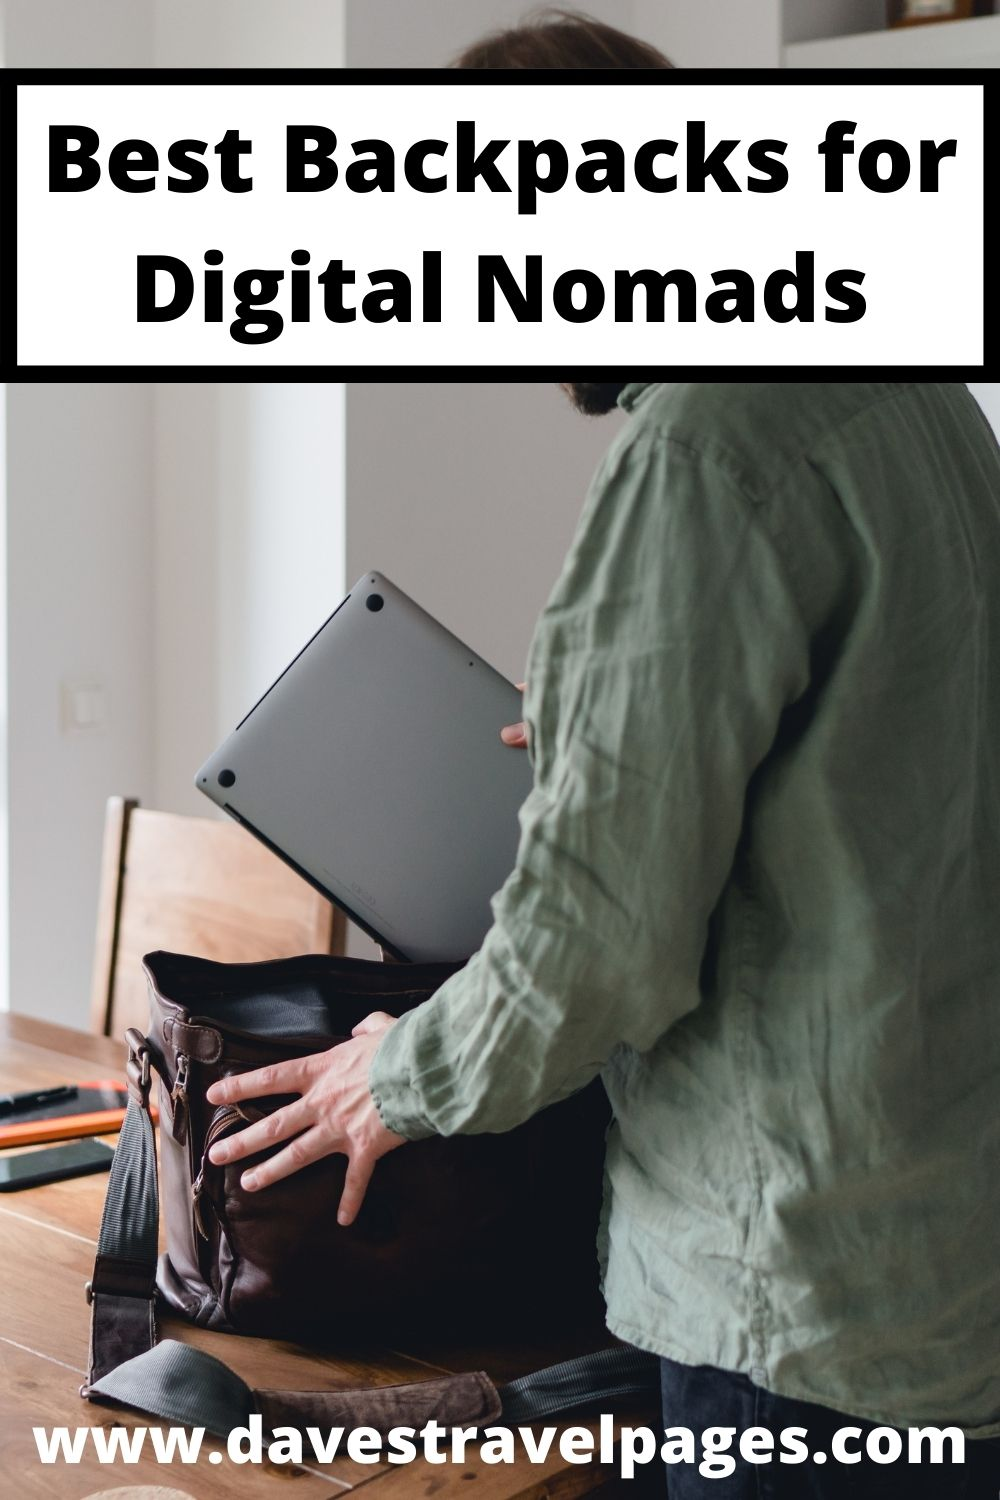 What digital nomads should look for in a backpack